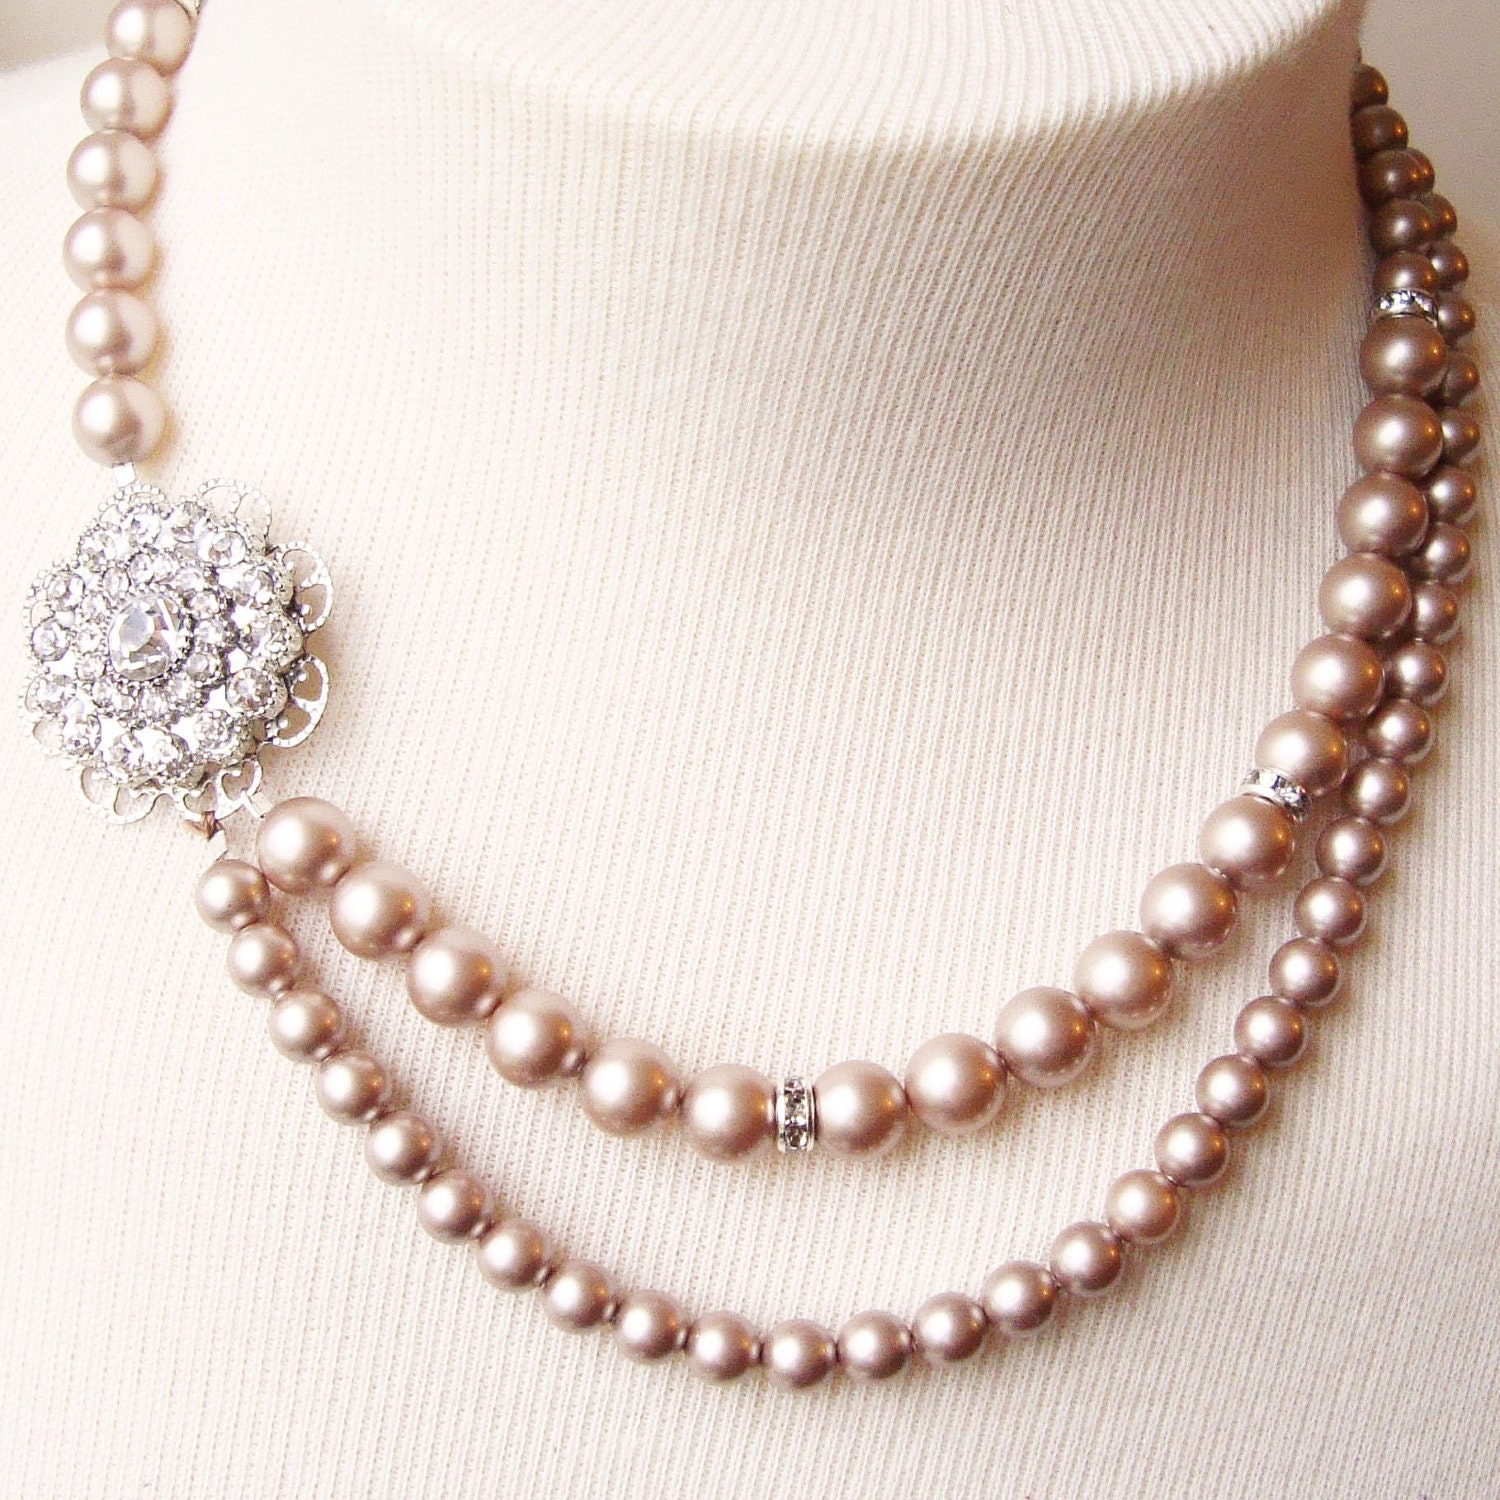 Champagne bridal necklace champagne pearl wedding jewelry for Jewelry for champagne wedding dress